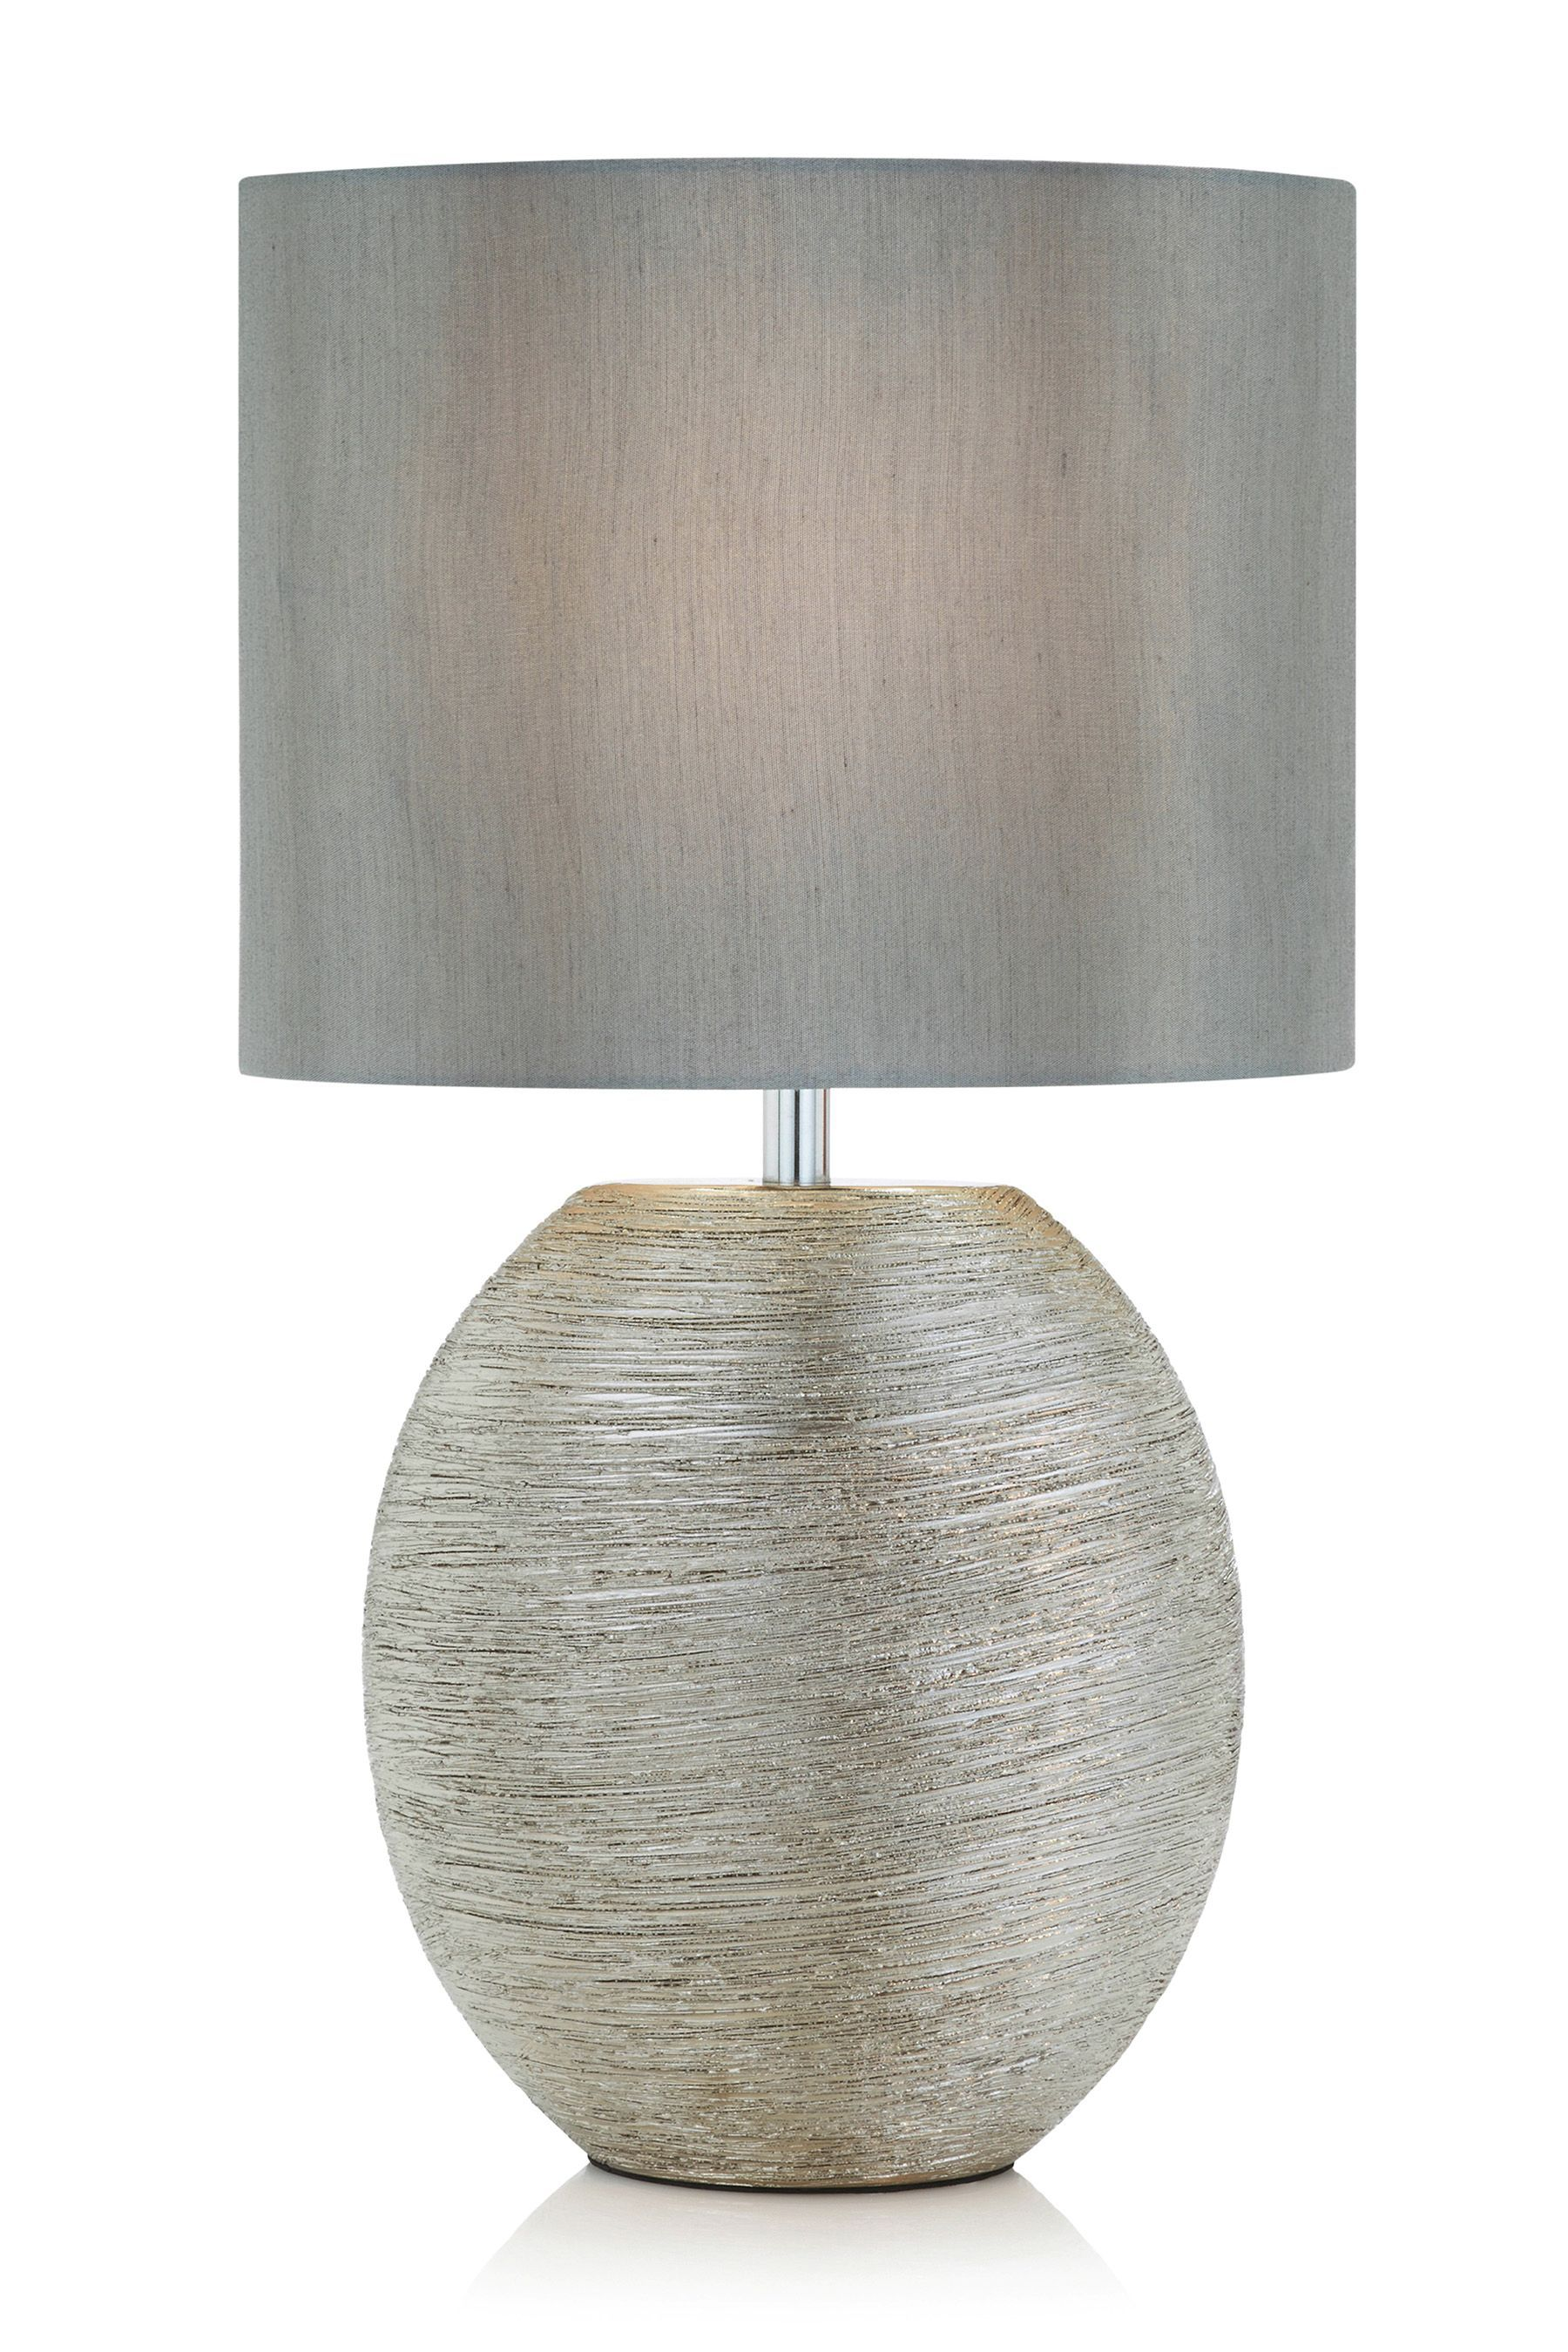 Large Table Lamps For Living Room Lake House Photos Buy Ceramic Scratch Silver Lamp From The Next Uk Online Shop